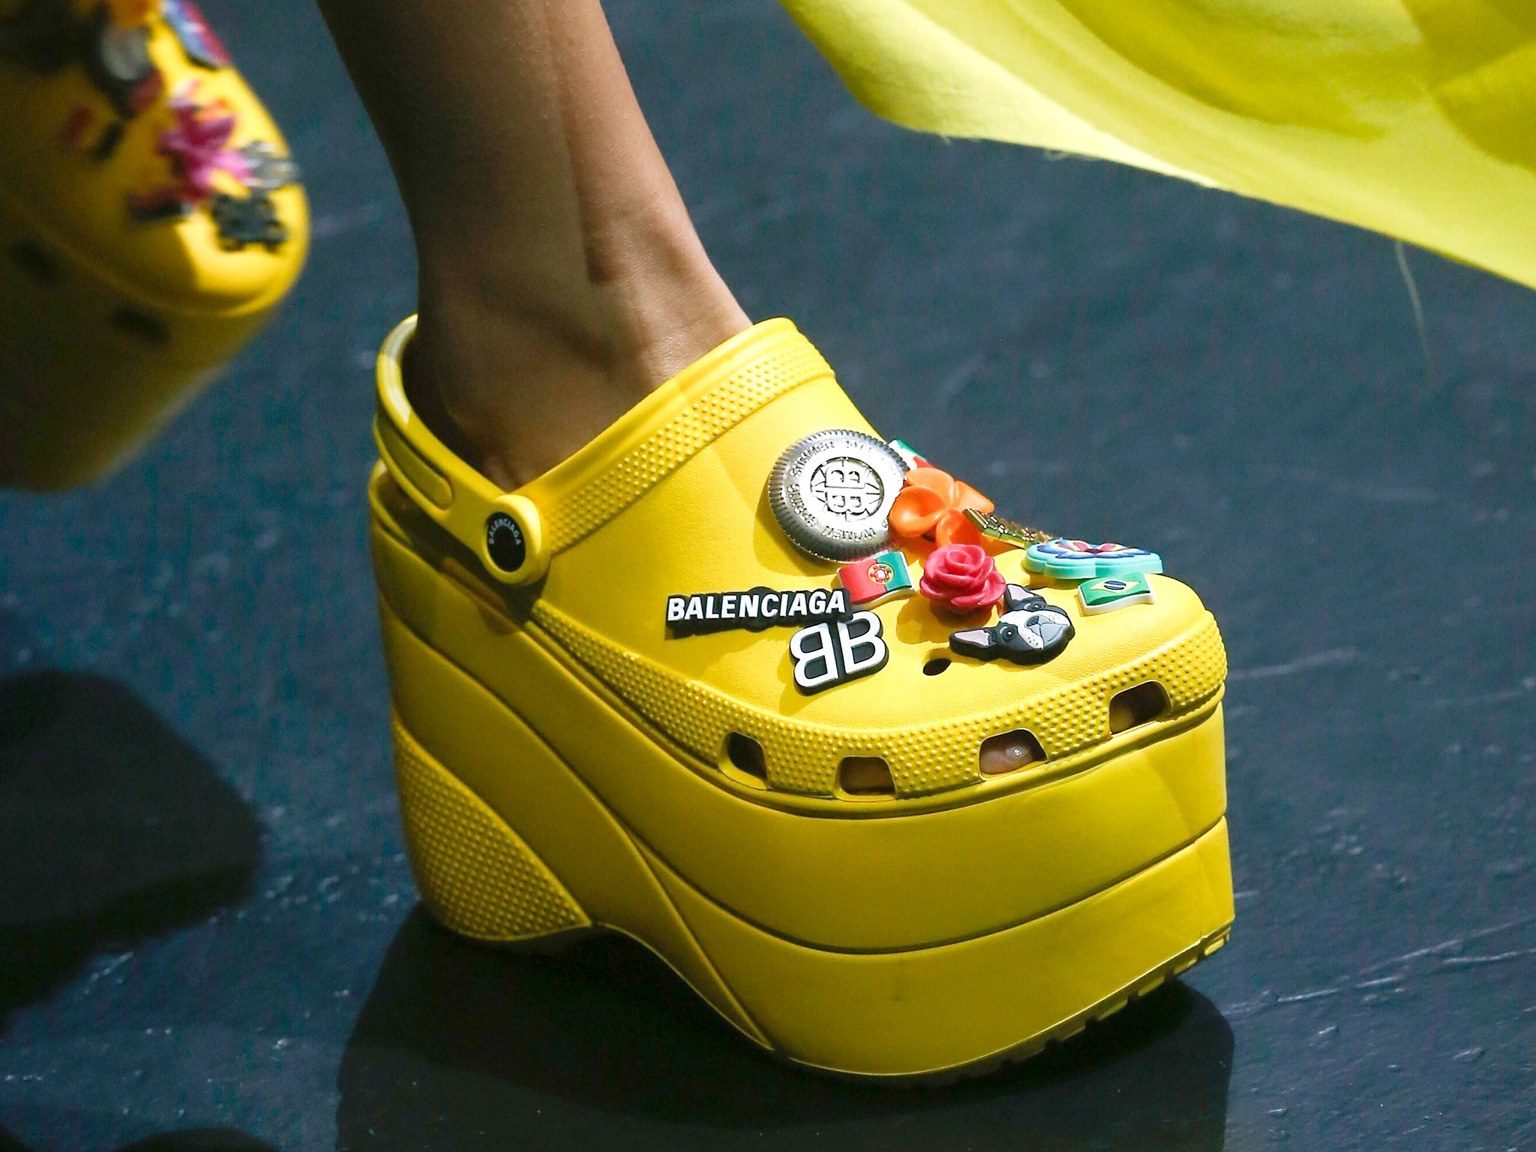 90s_trends_colour_2018_balenciaga_crocs